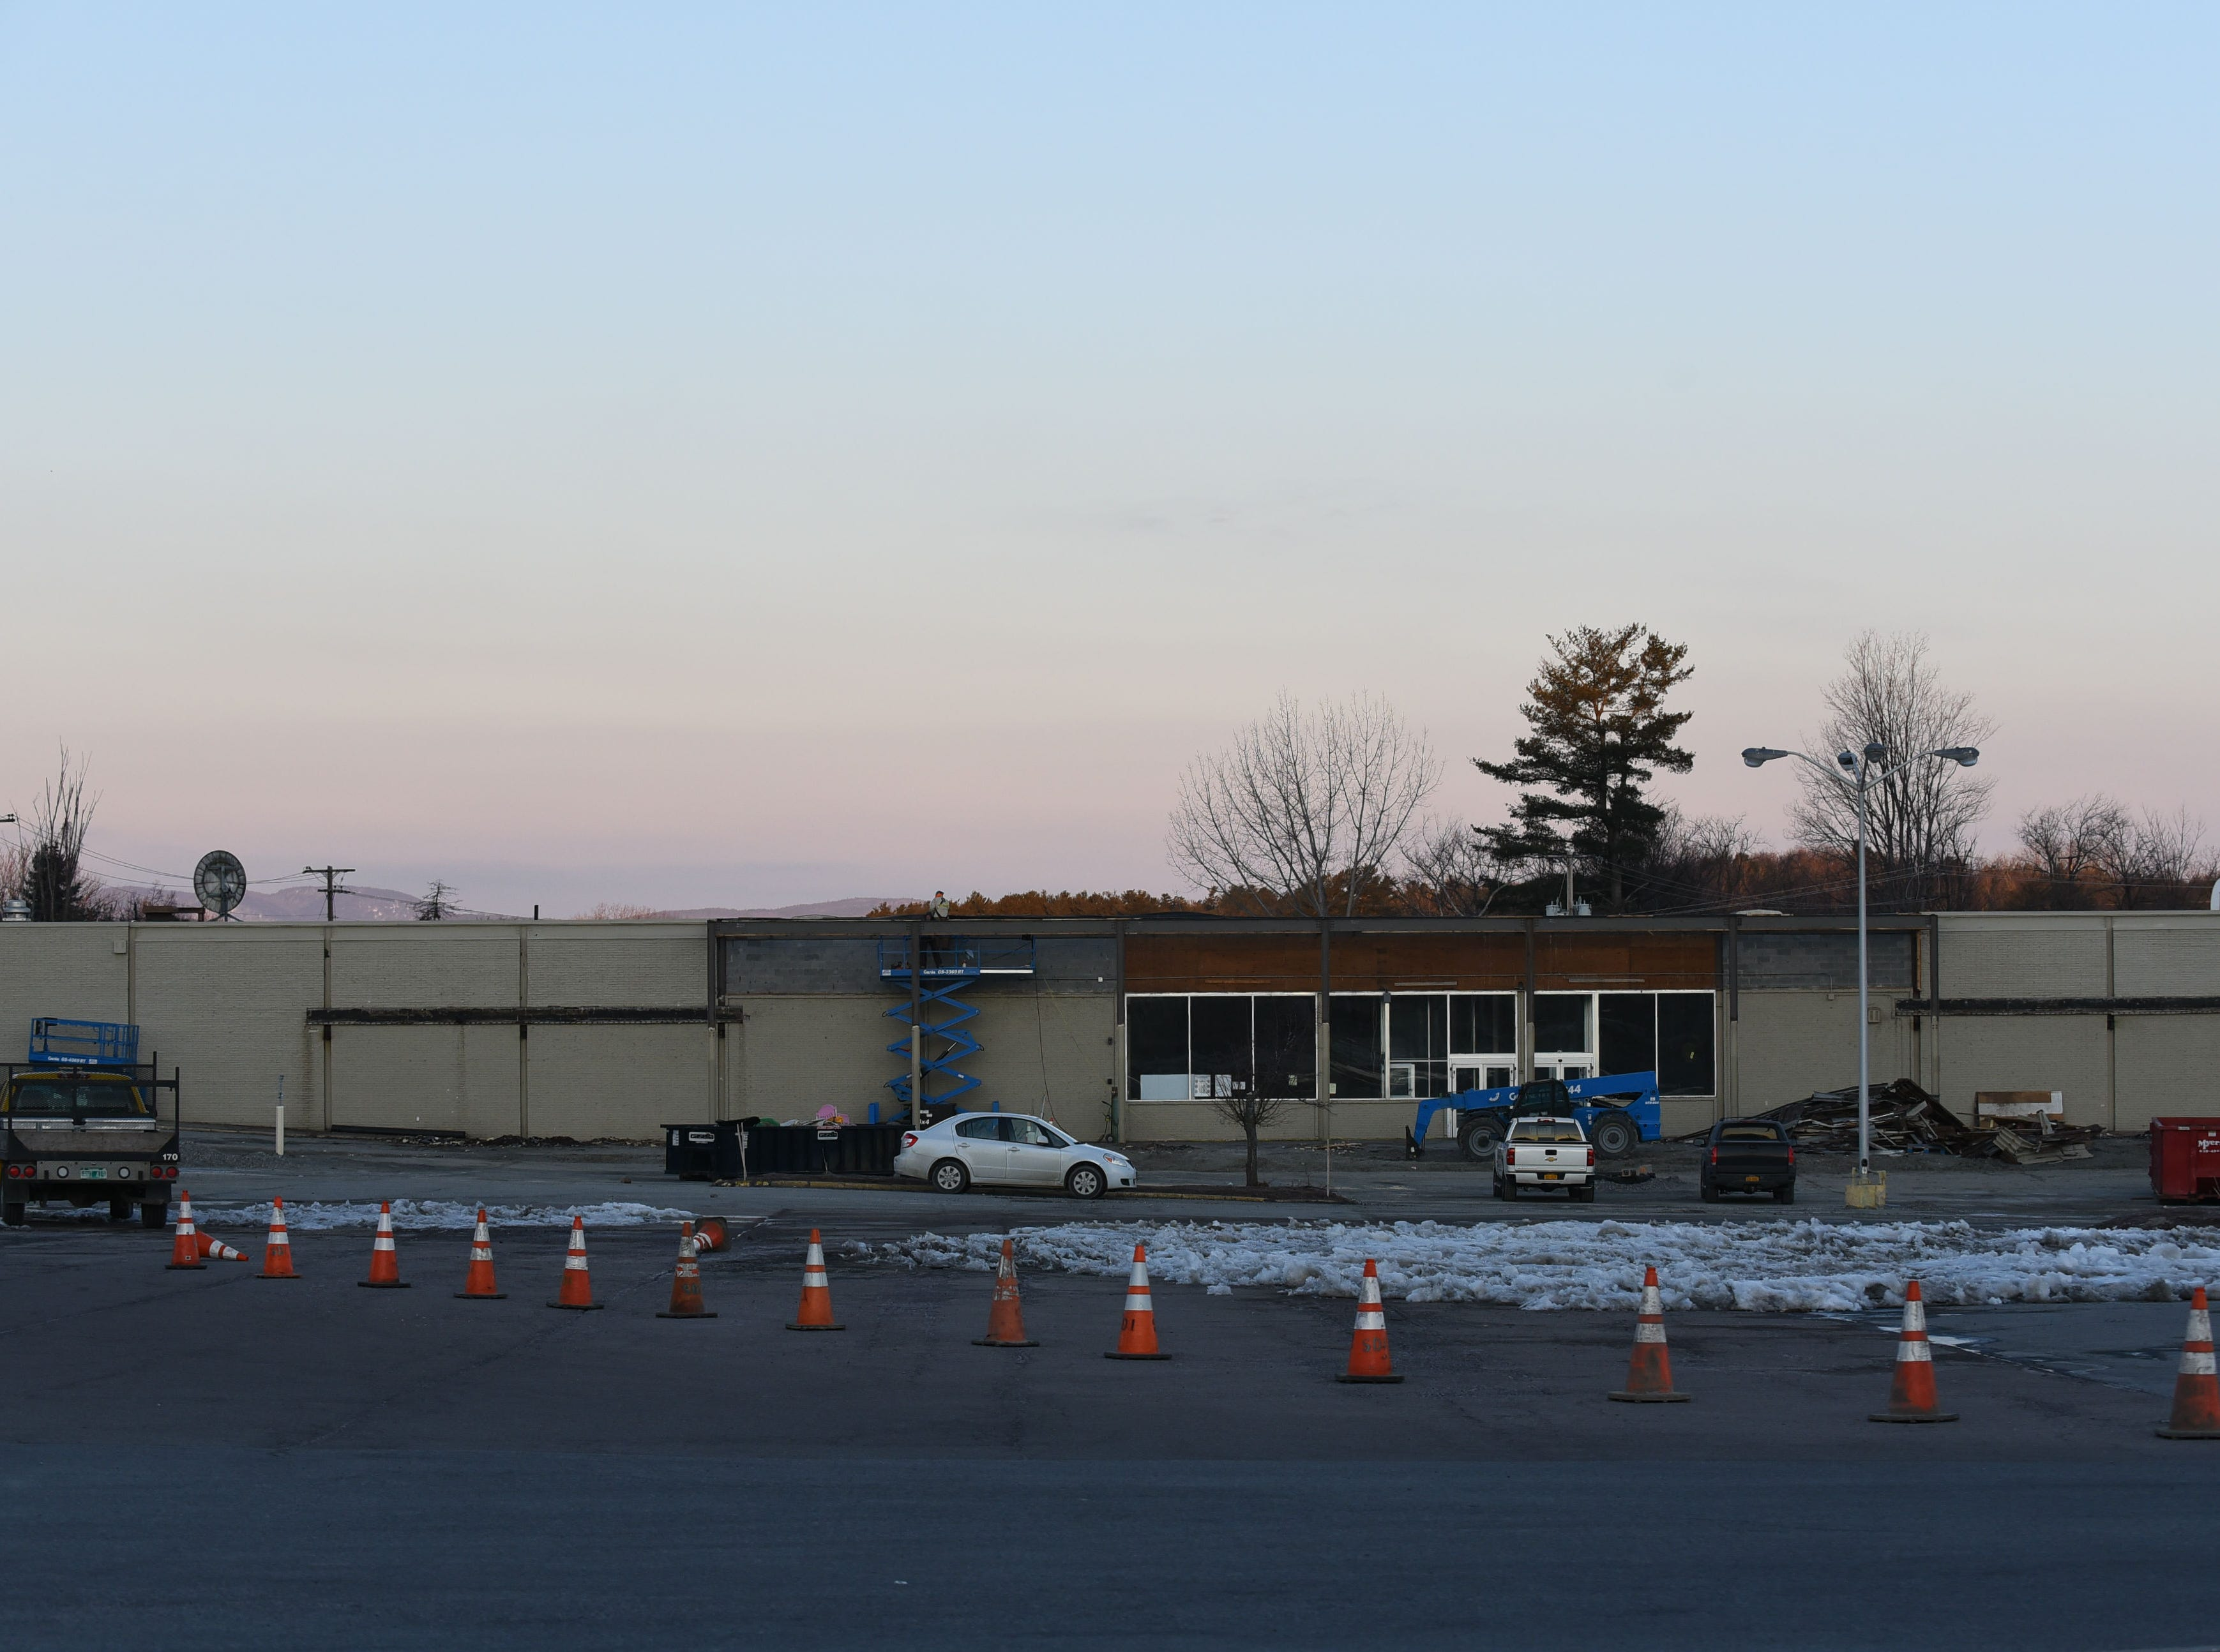 Orange cones close off the parking lot to the shopping center off of Shelburne Road in South Burlington that housed the Kmart on the morning of Wednesday, March 20, 2019. Work has begun at the empty shopping center to make way for a new Hannaford supermarket.